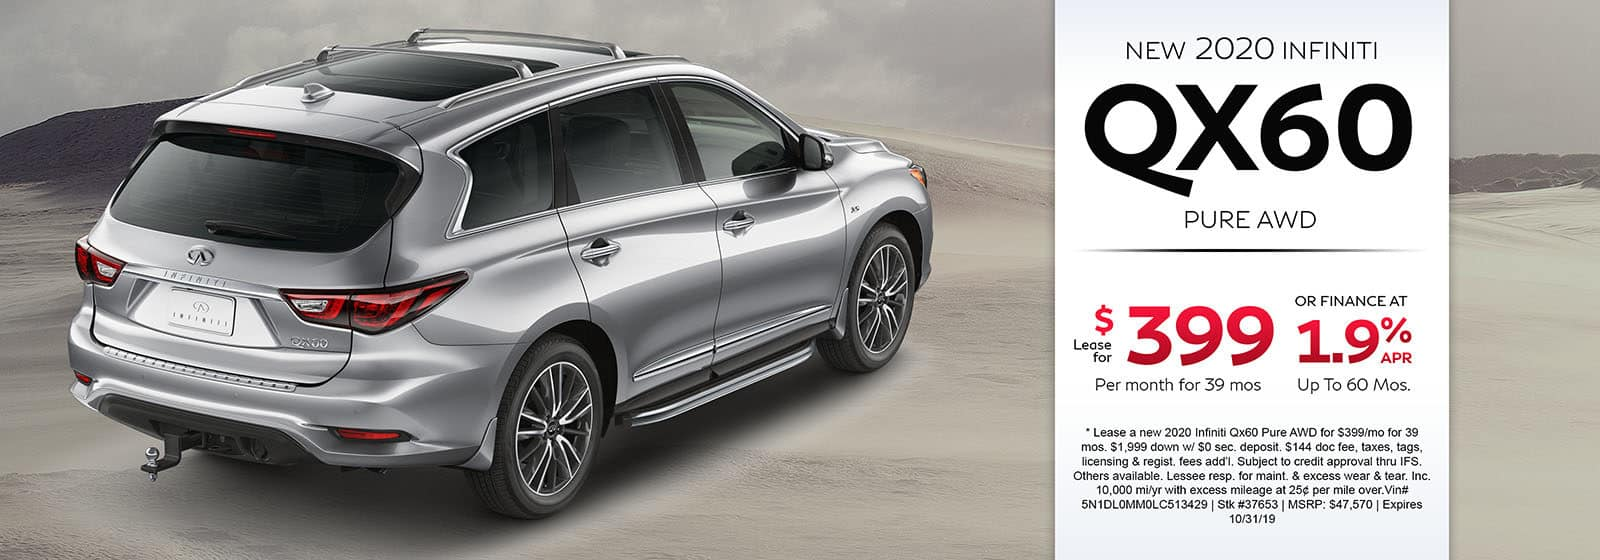 Lease a new 2020 INFINITI QX60 Pure AWD for $399 a month for 39 months. Or get special 1.9% APR financing for up to 60 months